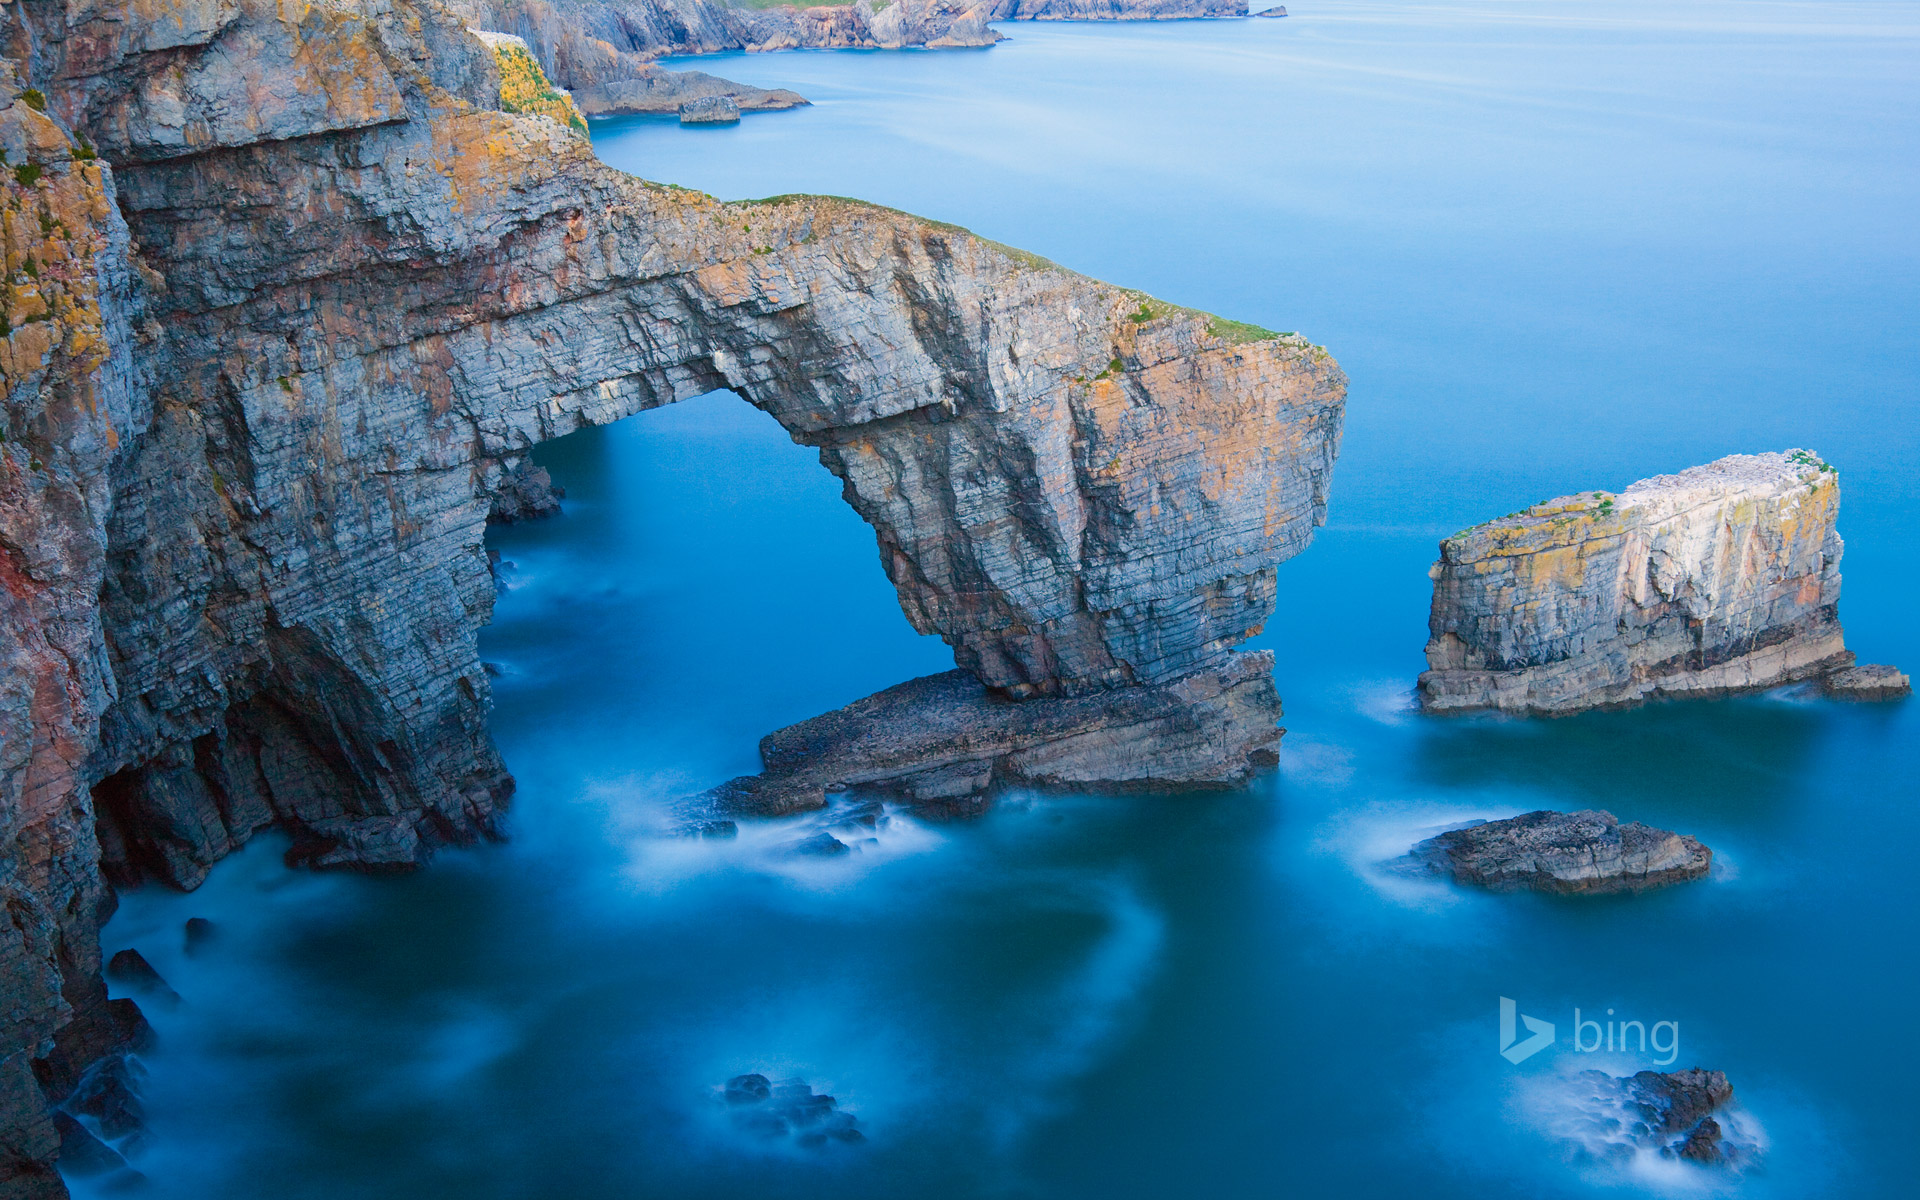 Green Bridge of Wales in Pembrokeshire Coast National Park, Wales